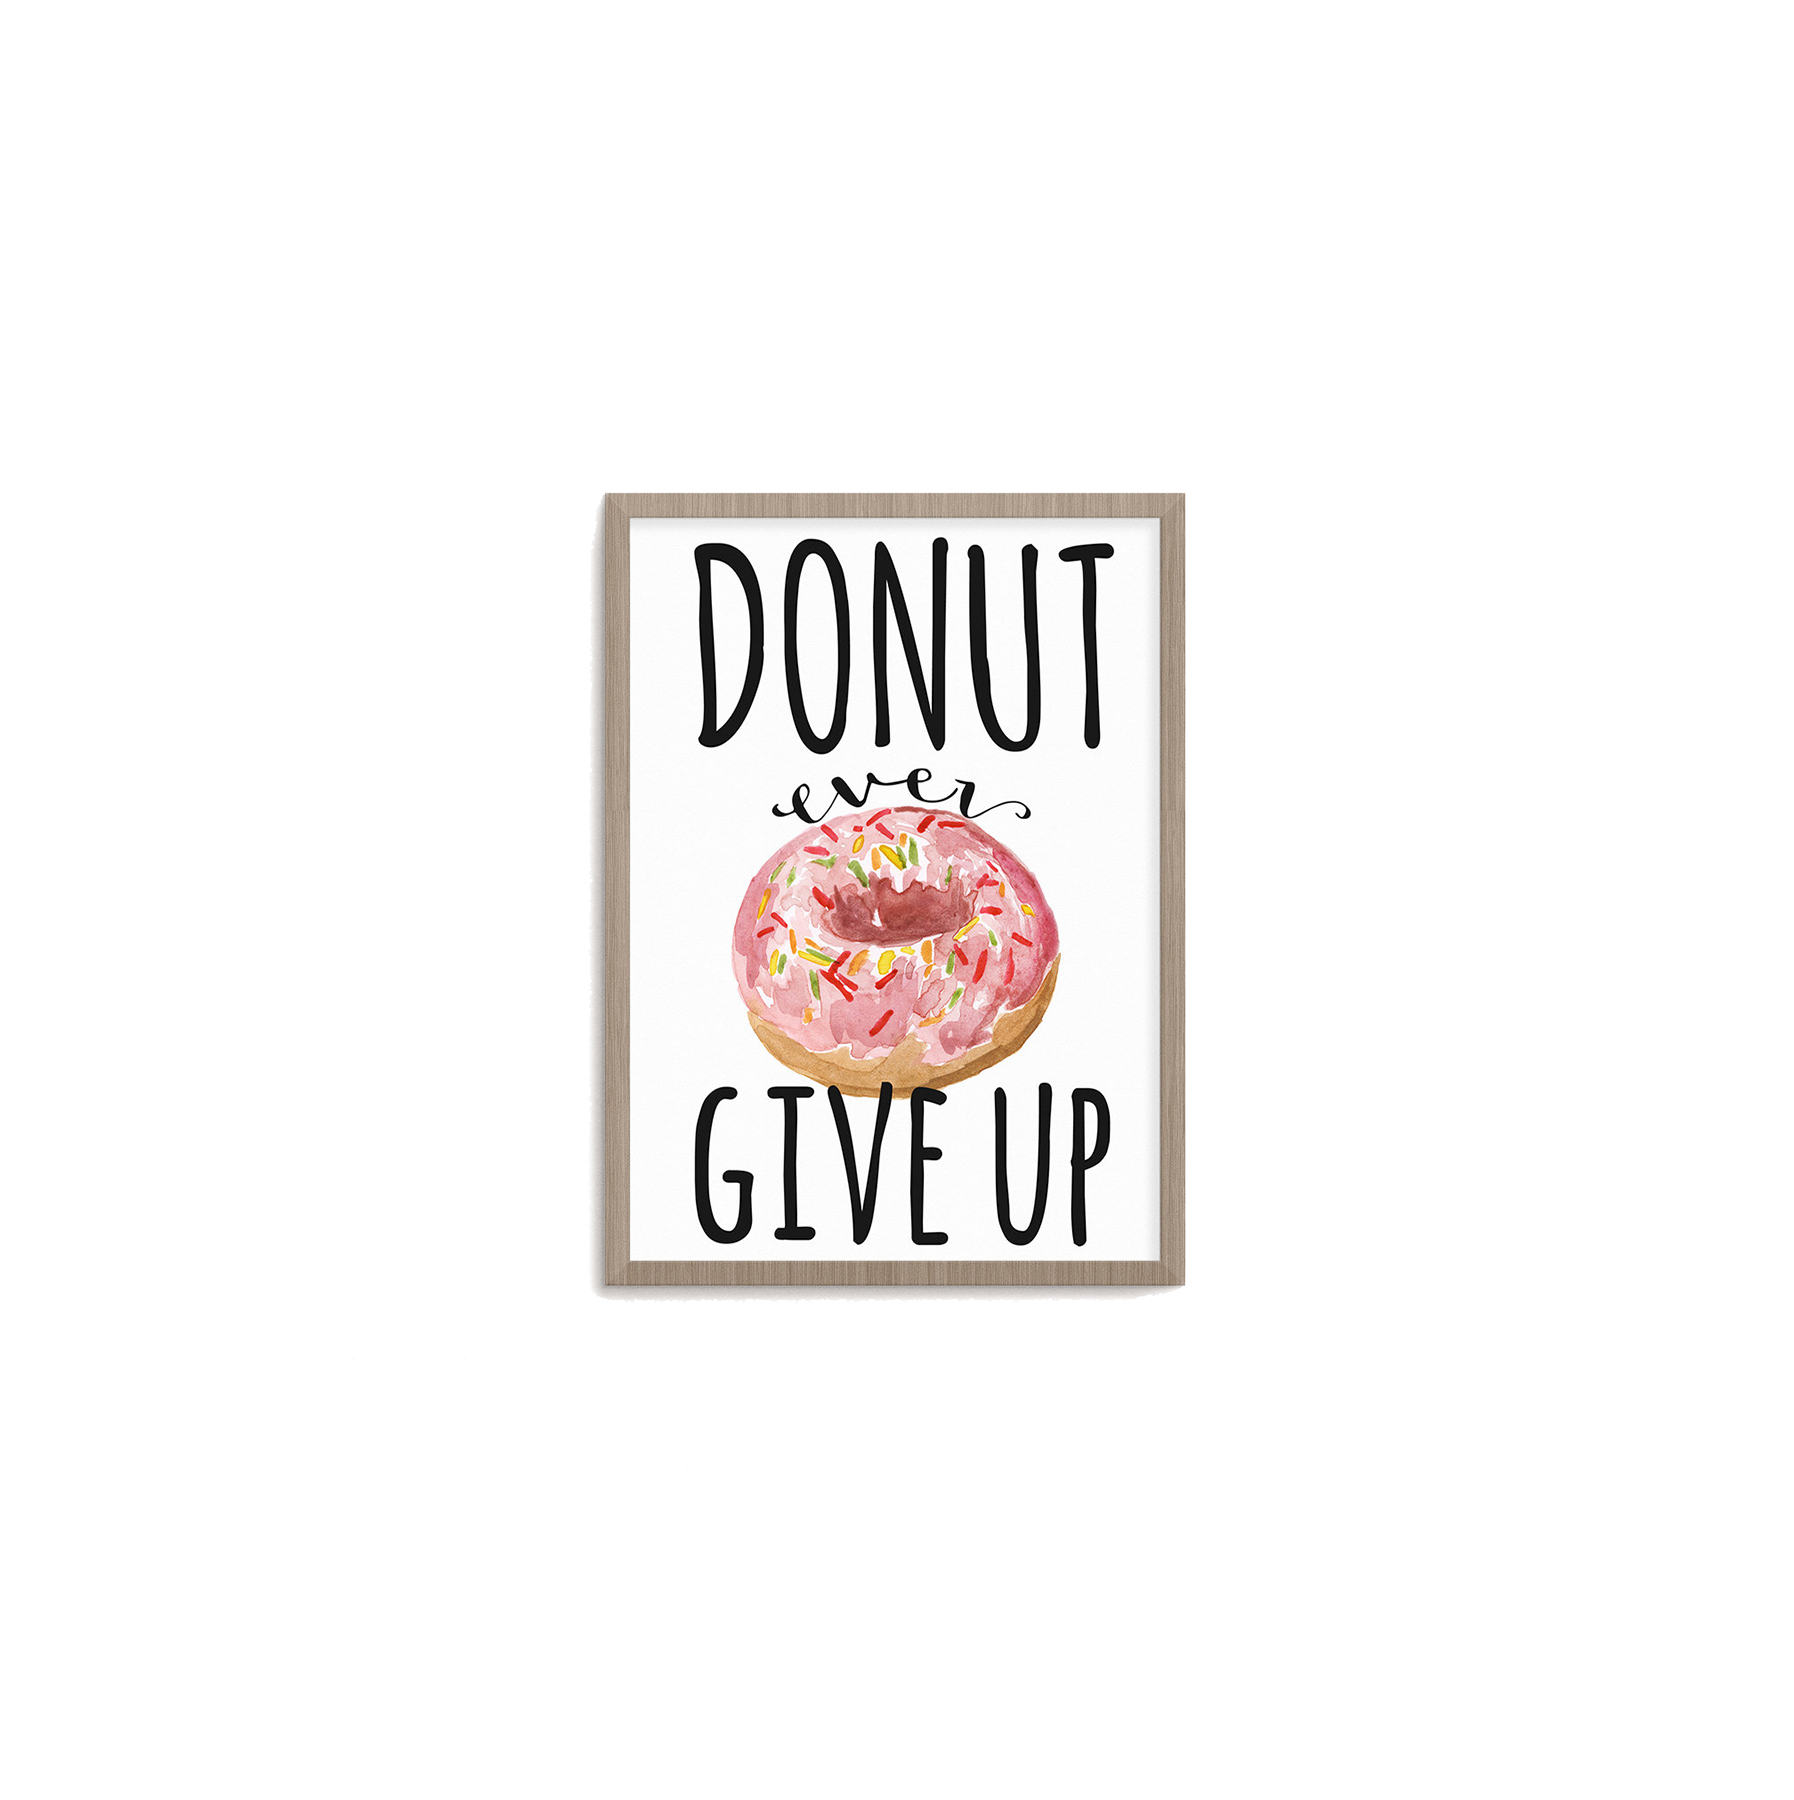 Donut Ever Give Up Print